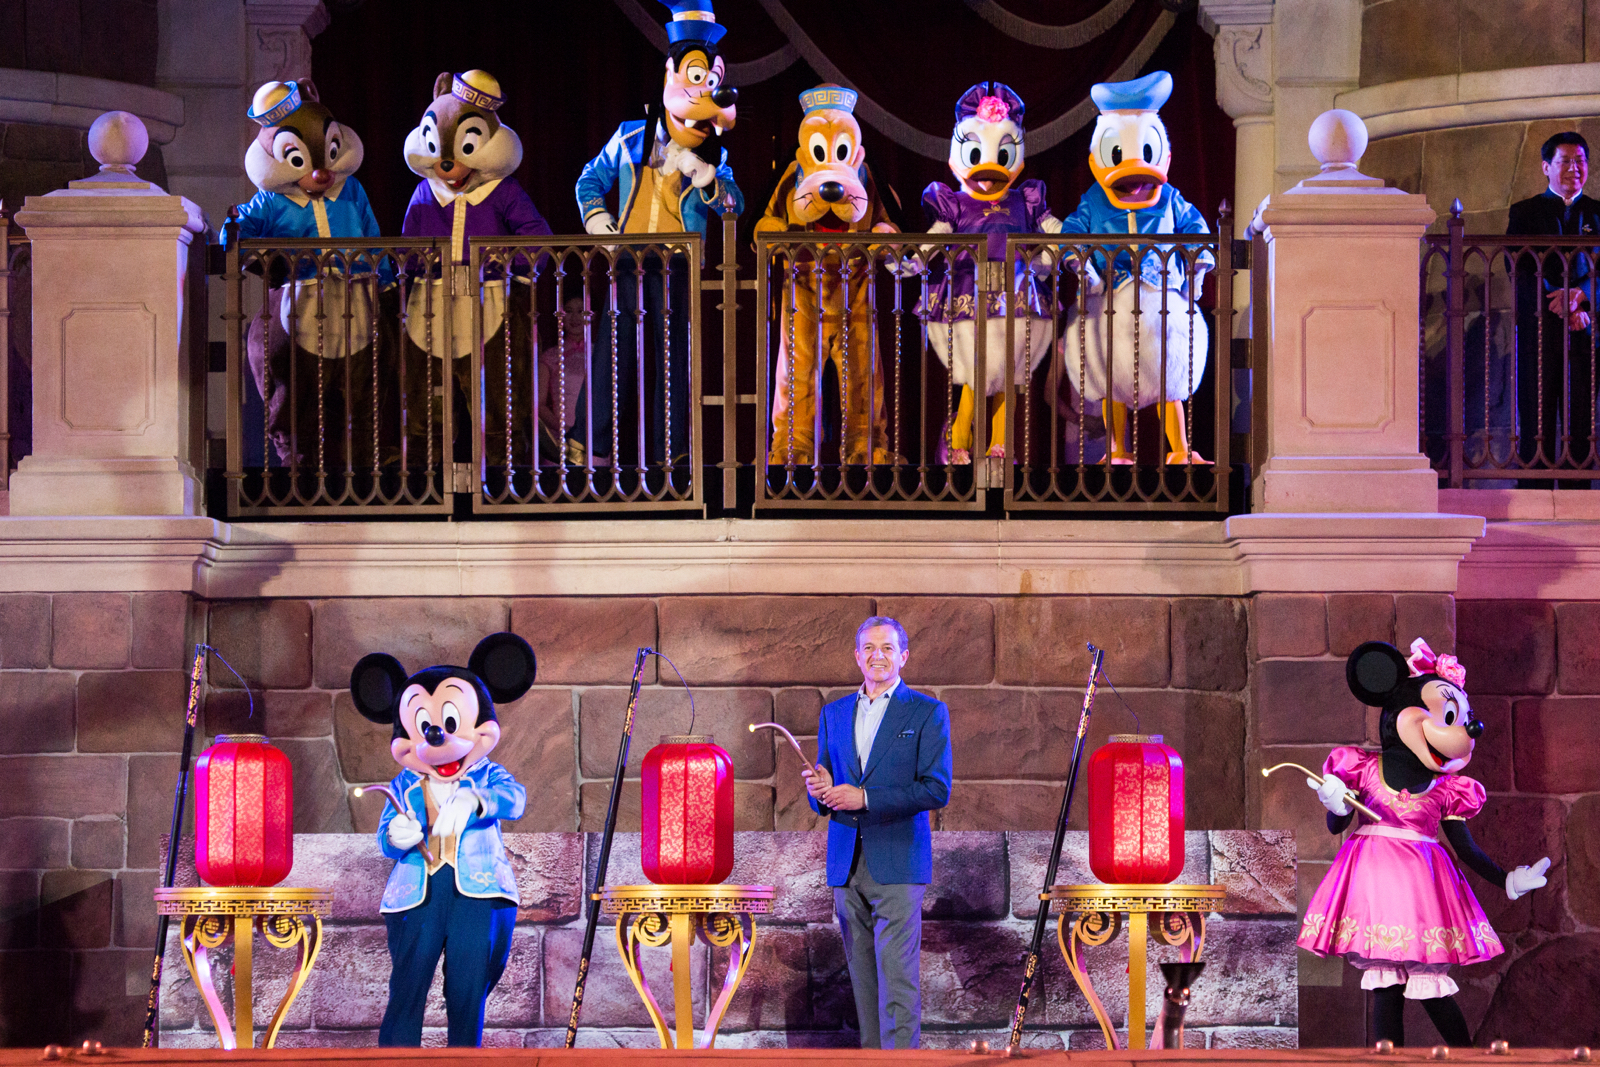 Characters assembled on stage to inaugurate the anniversary